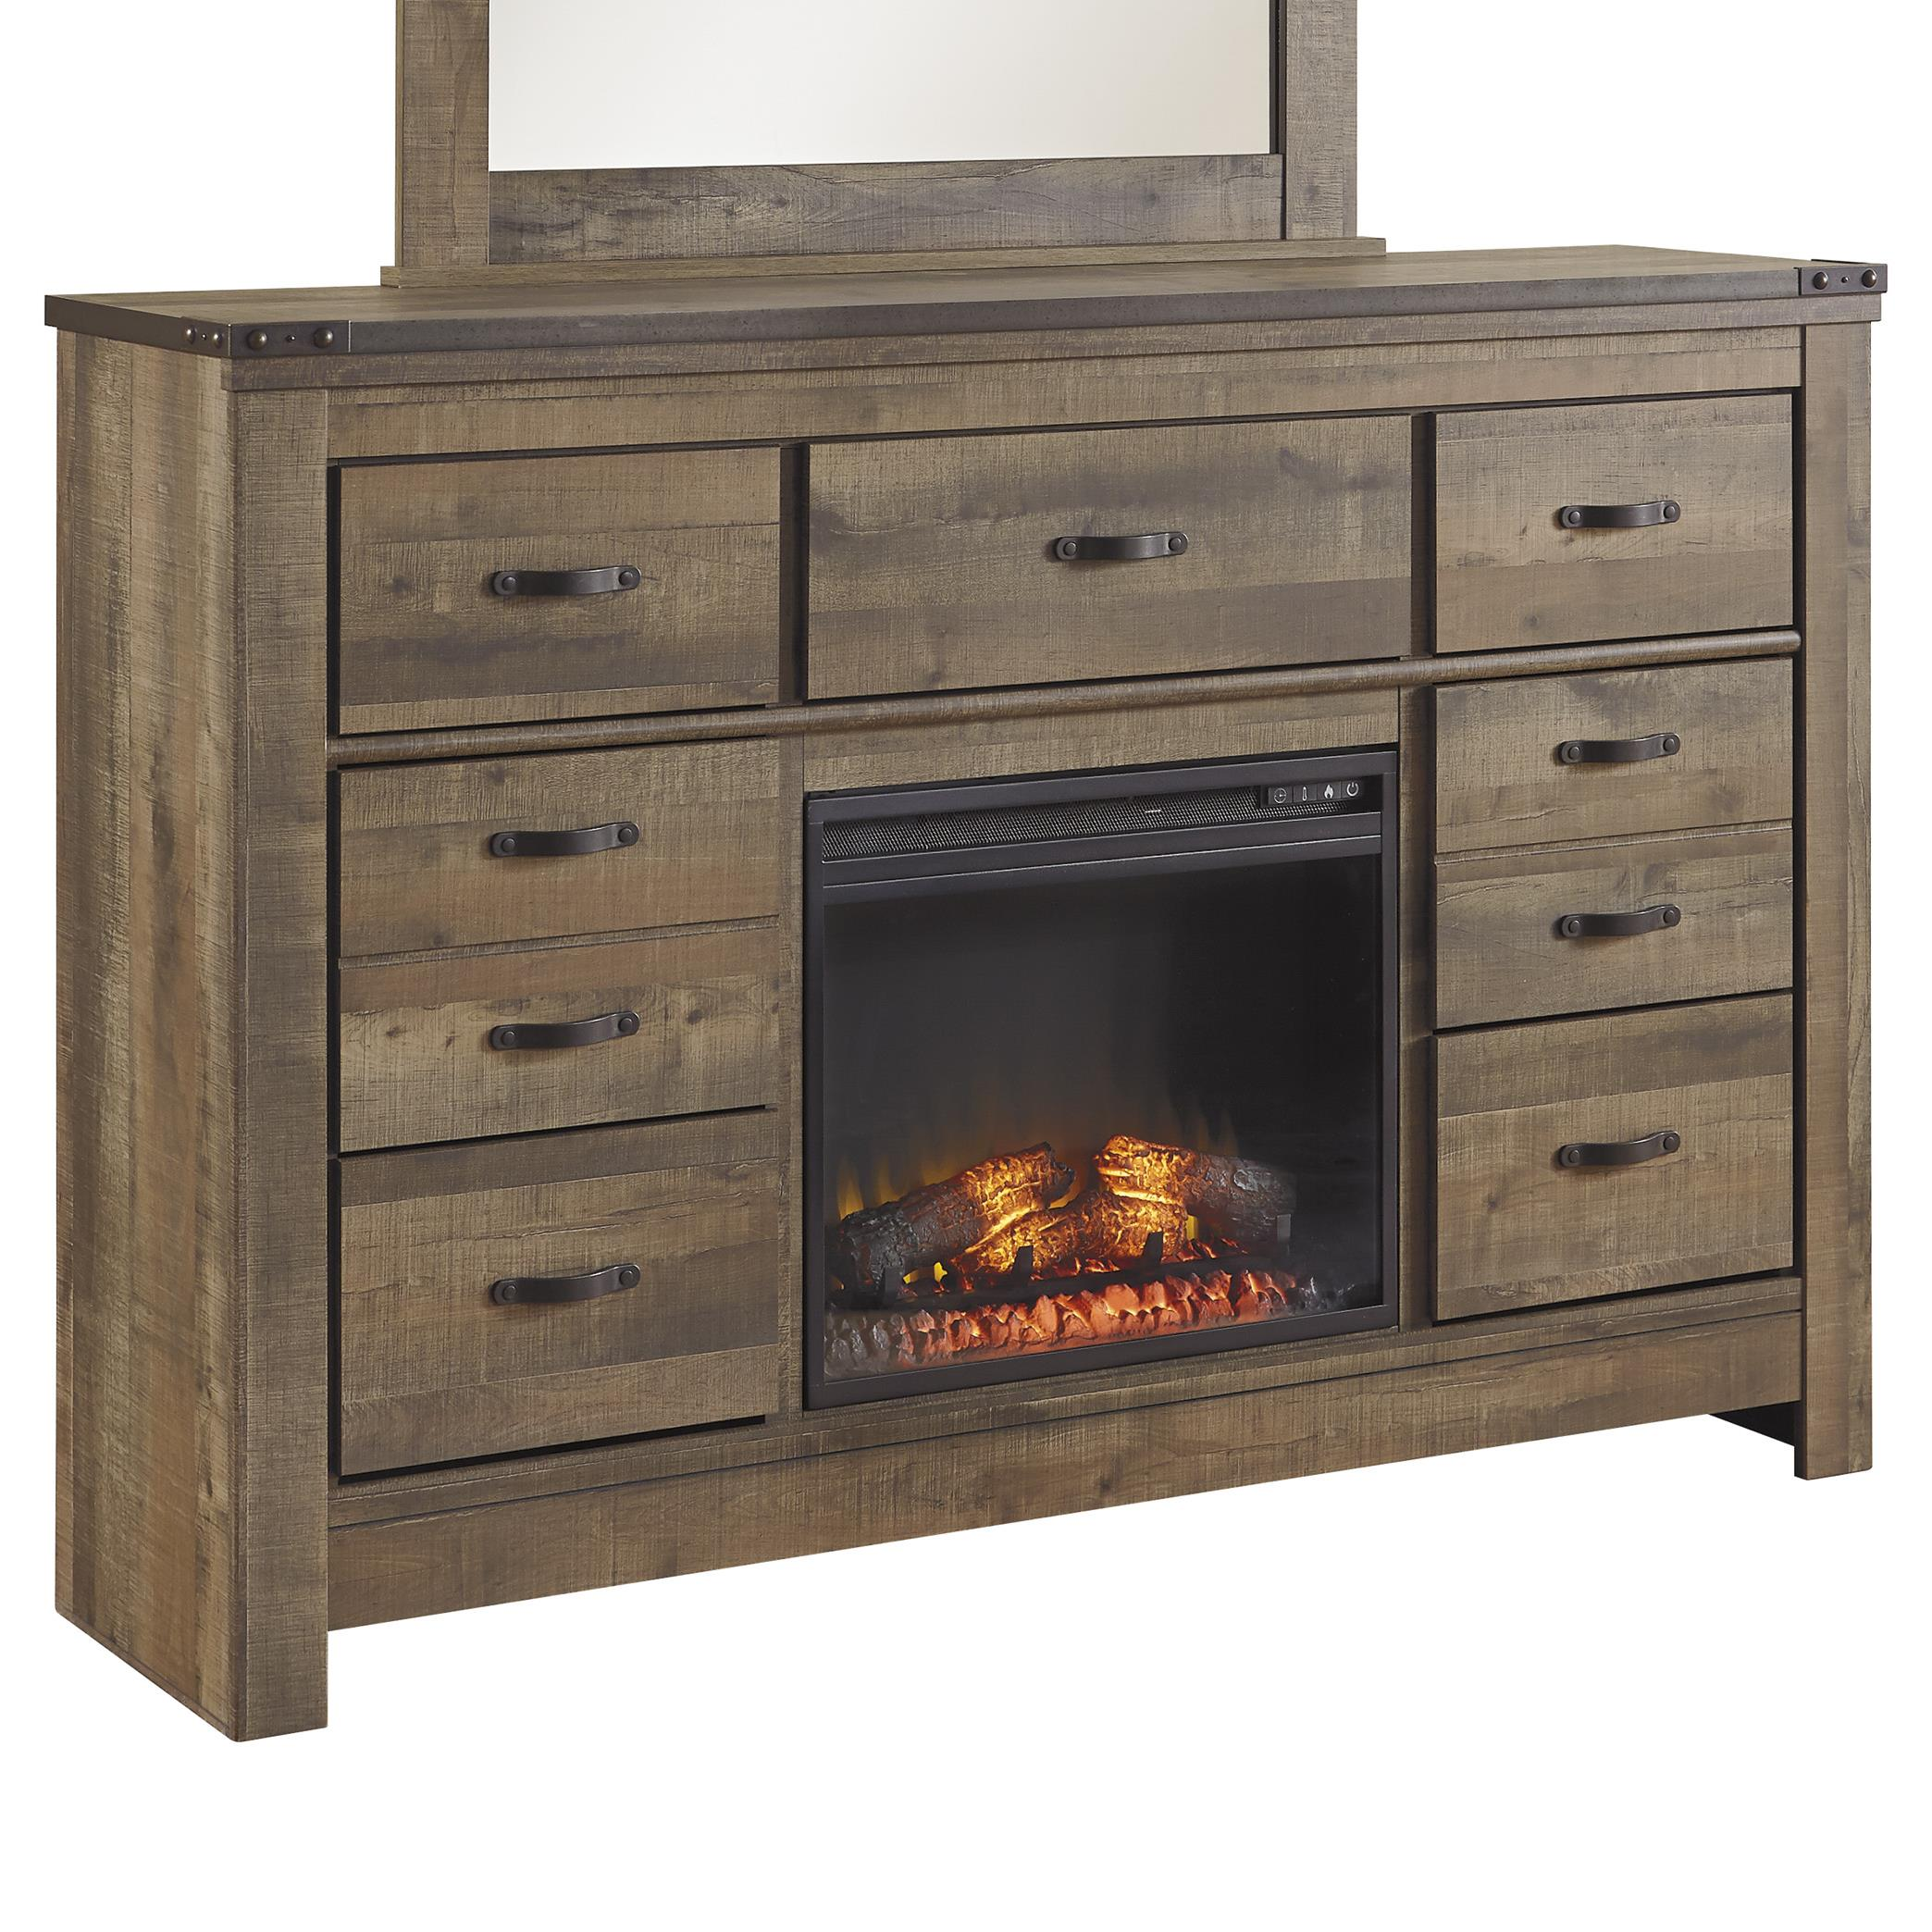 Signature Design by Ashley Trinell Rustic Look Dresser with ...